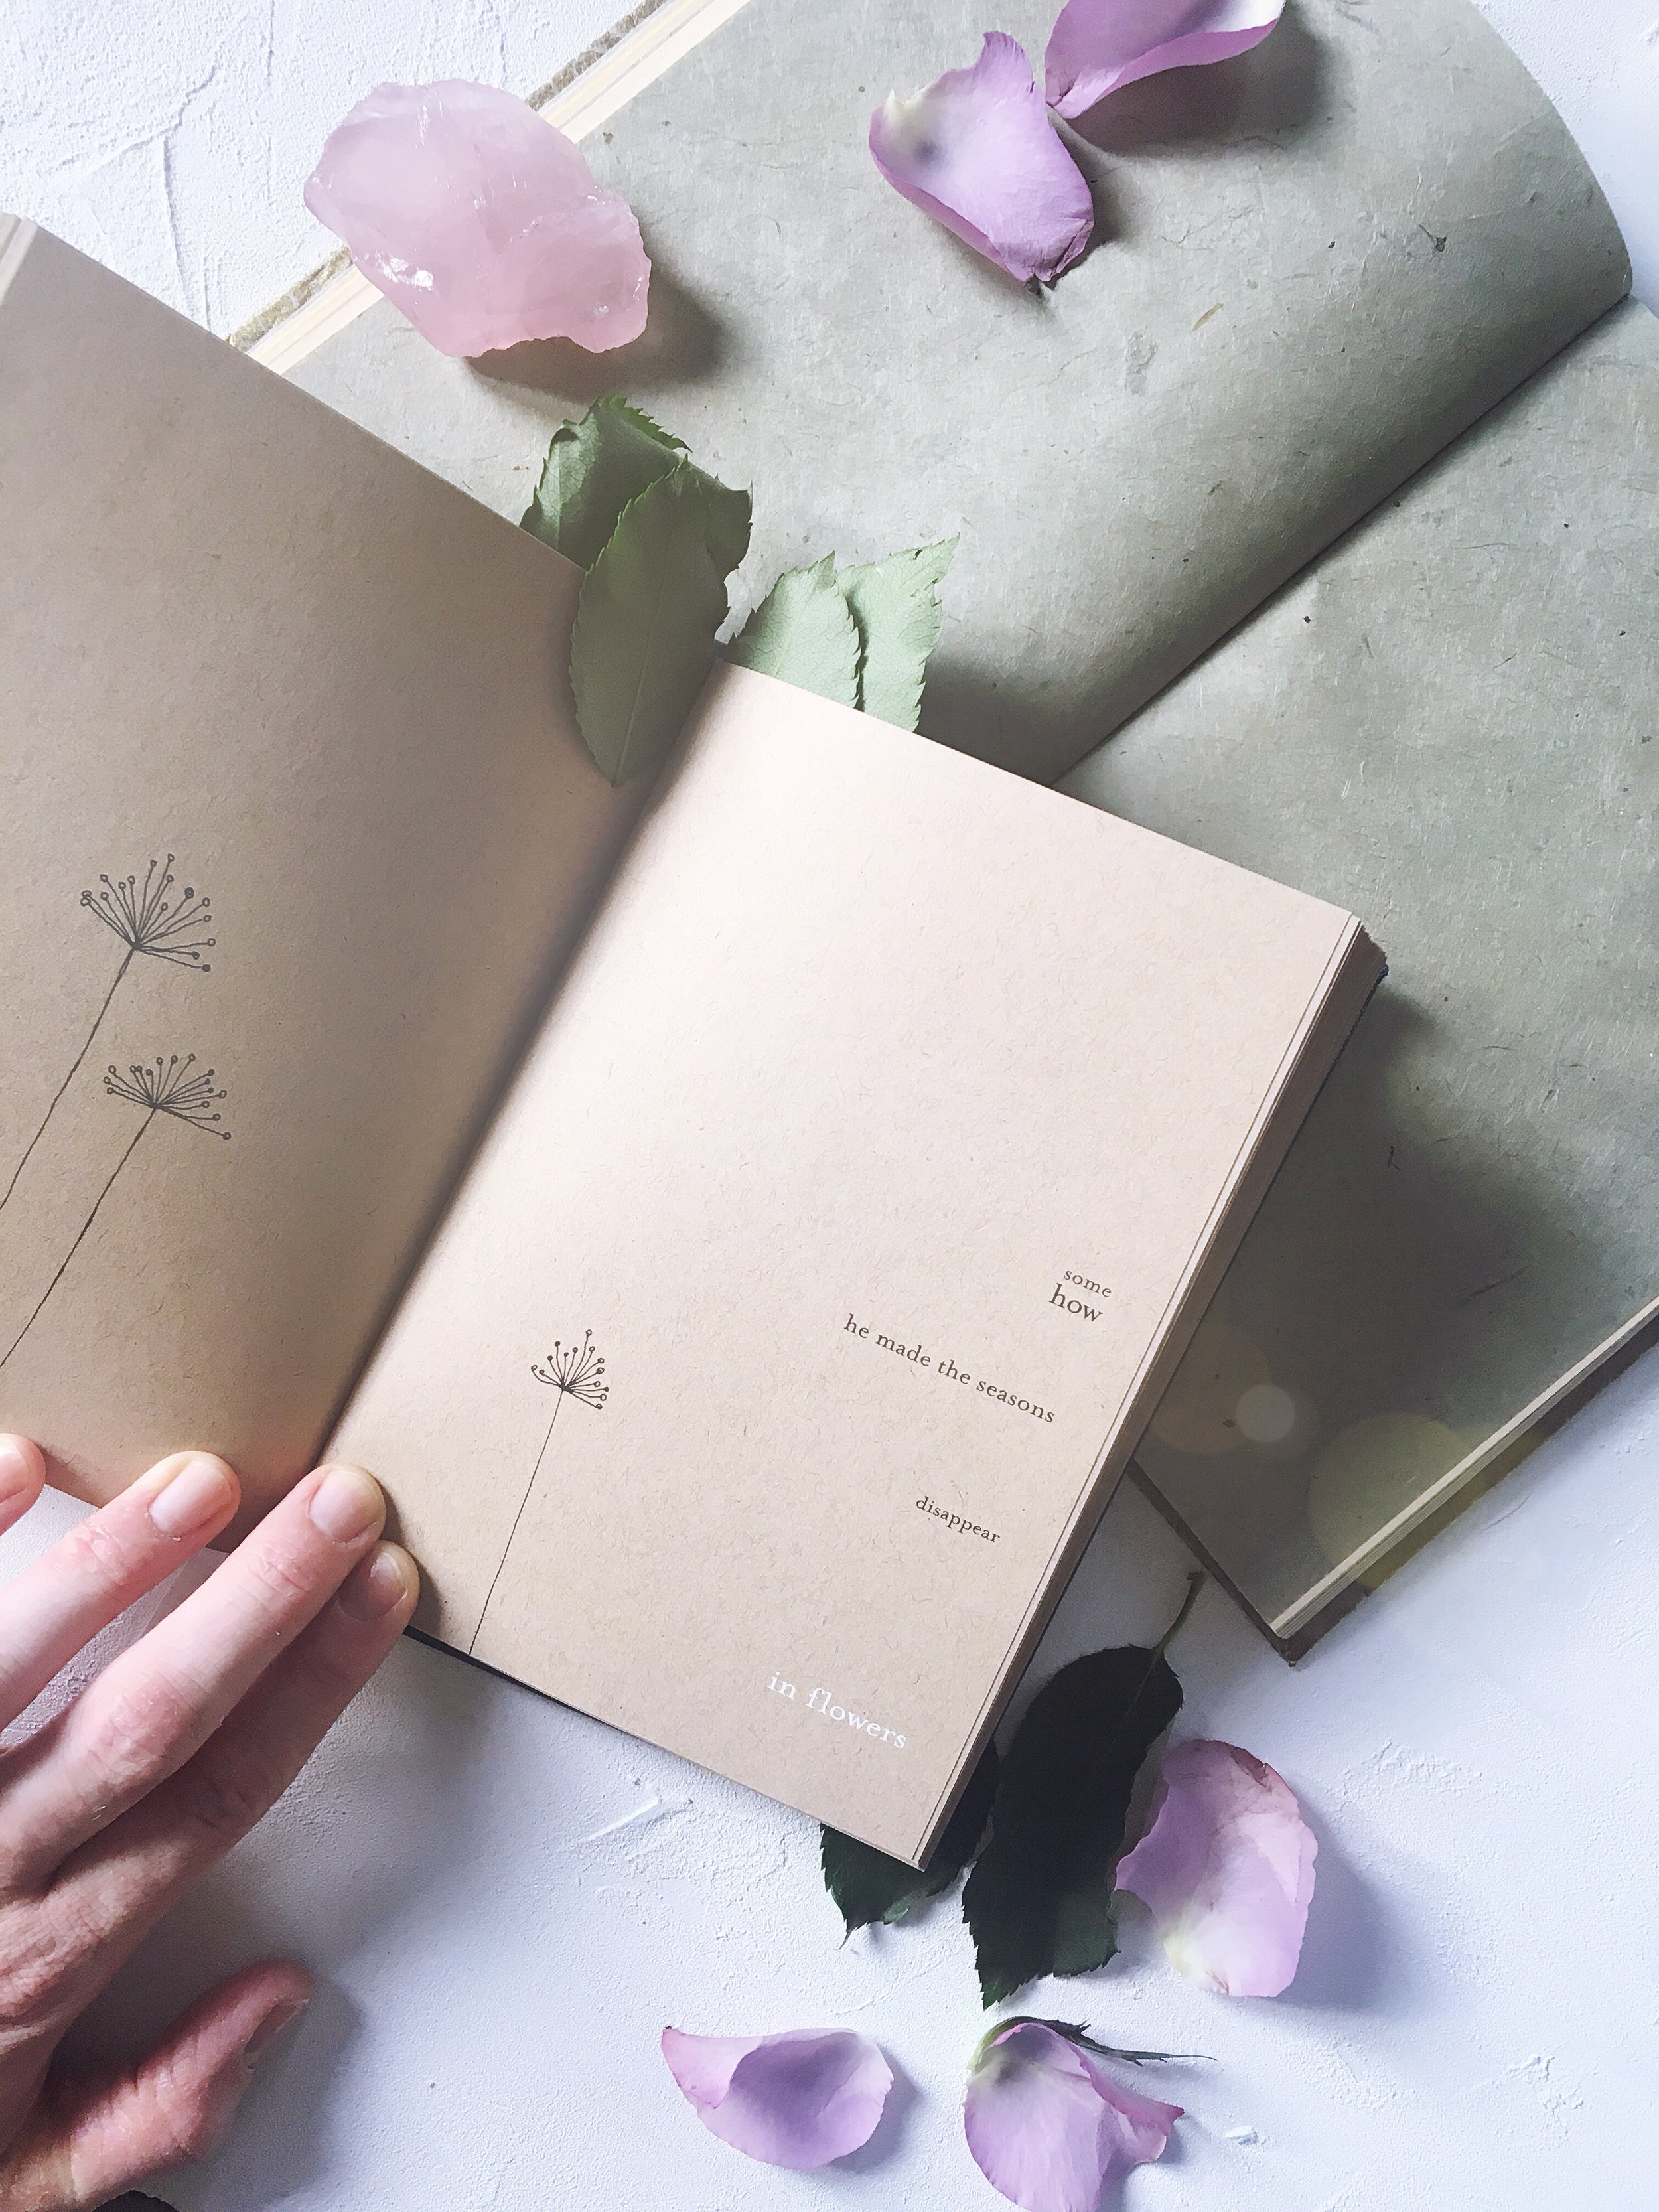 some / how / he made the seasons / disappear / in flowers  - count me the stars, by Kylie Johnson